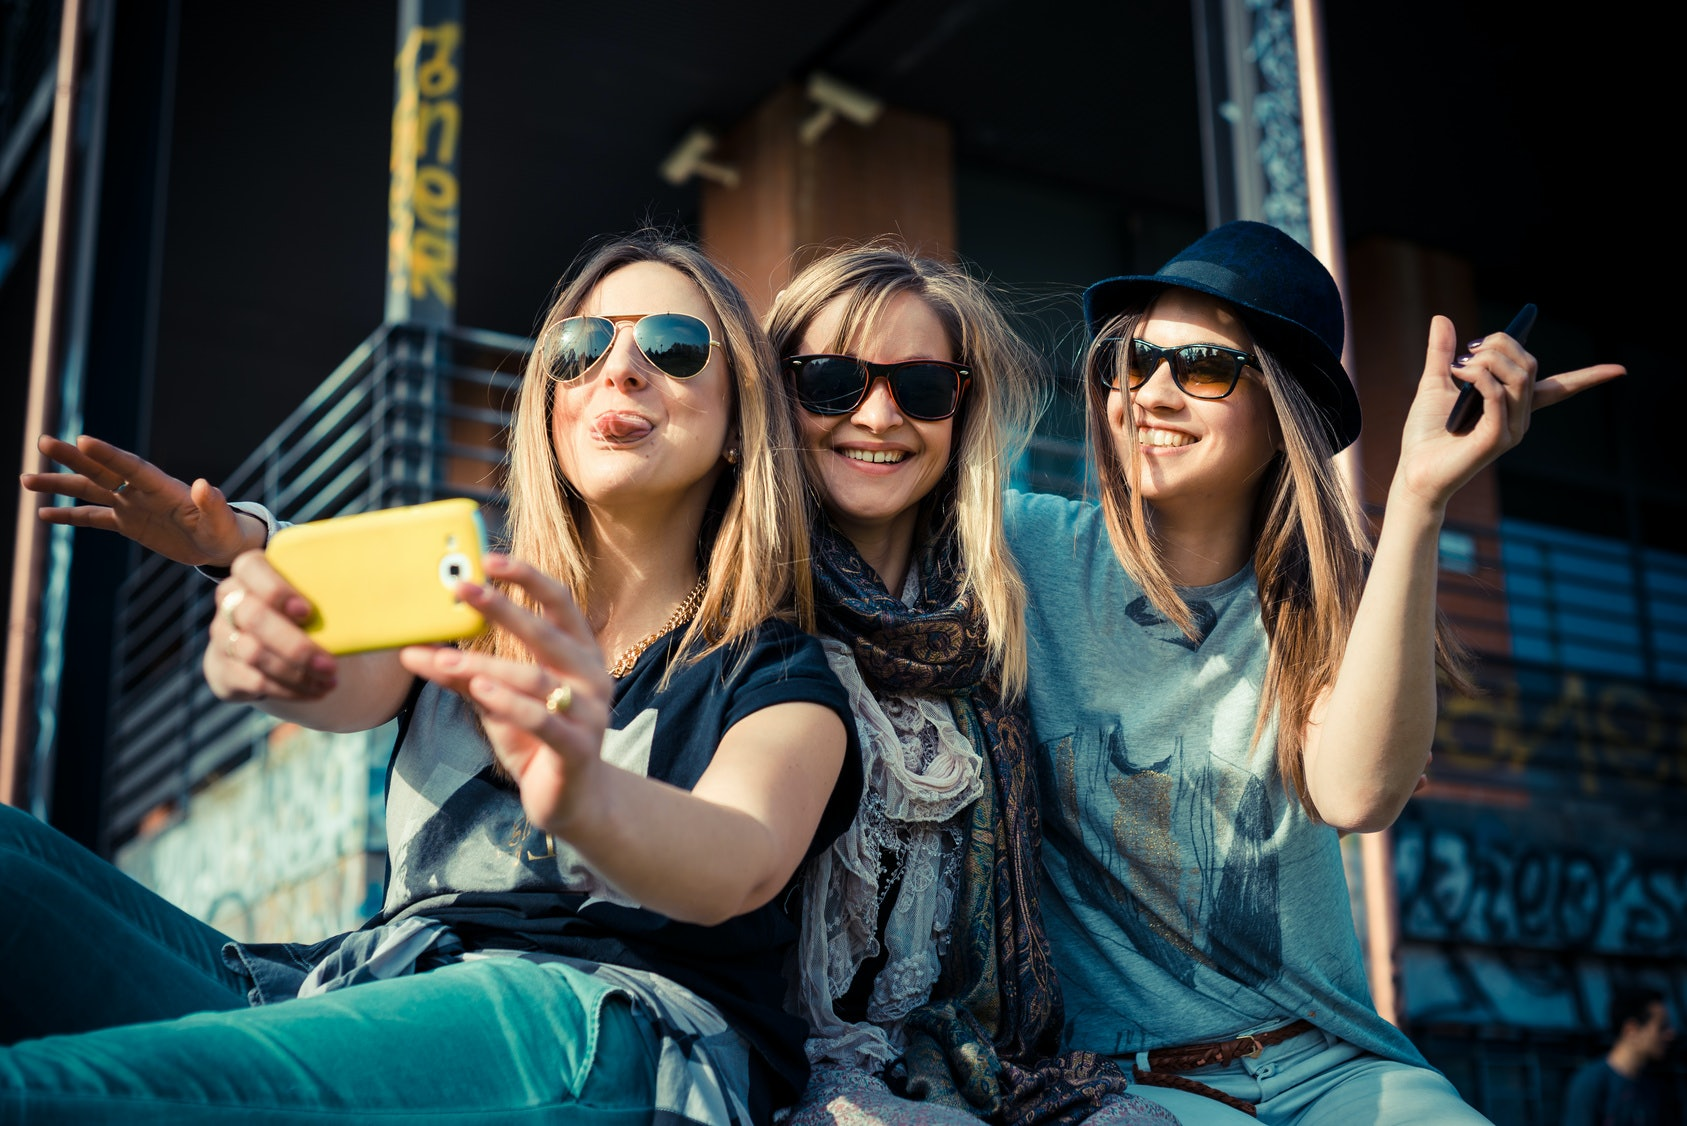 Best places to meet up with friends